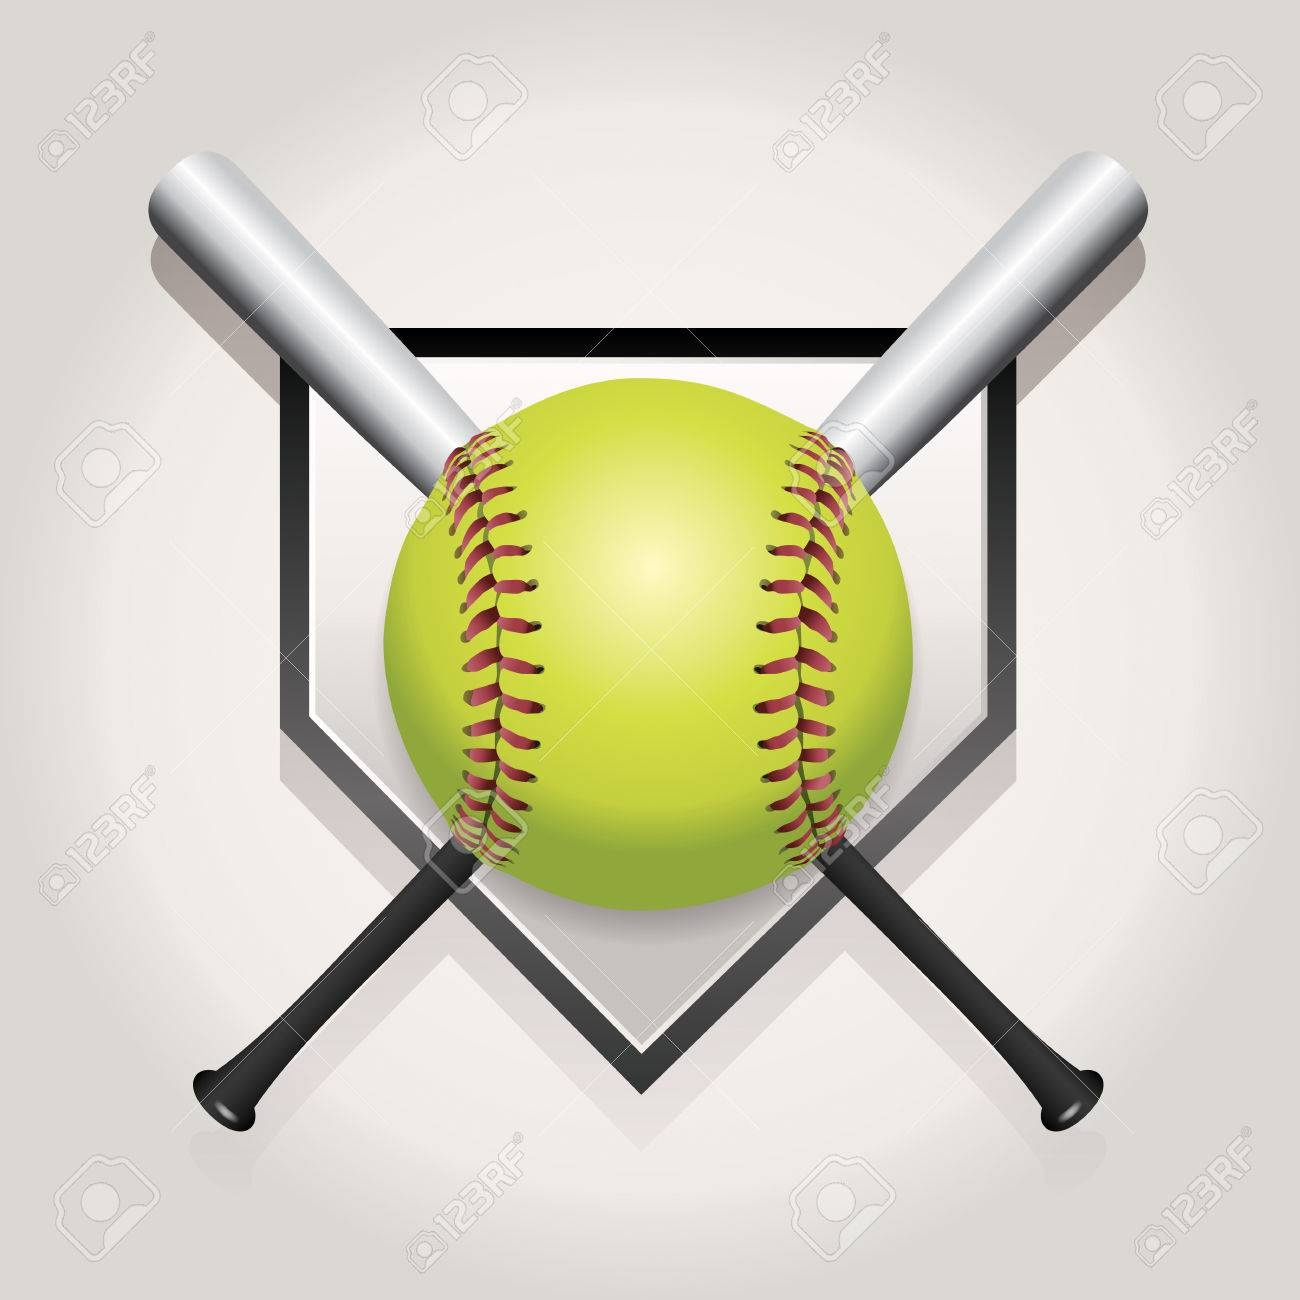 Softball Stock Photos And Images - 123Rf - Free Printable Softball Images